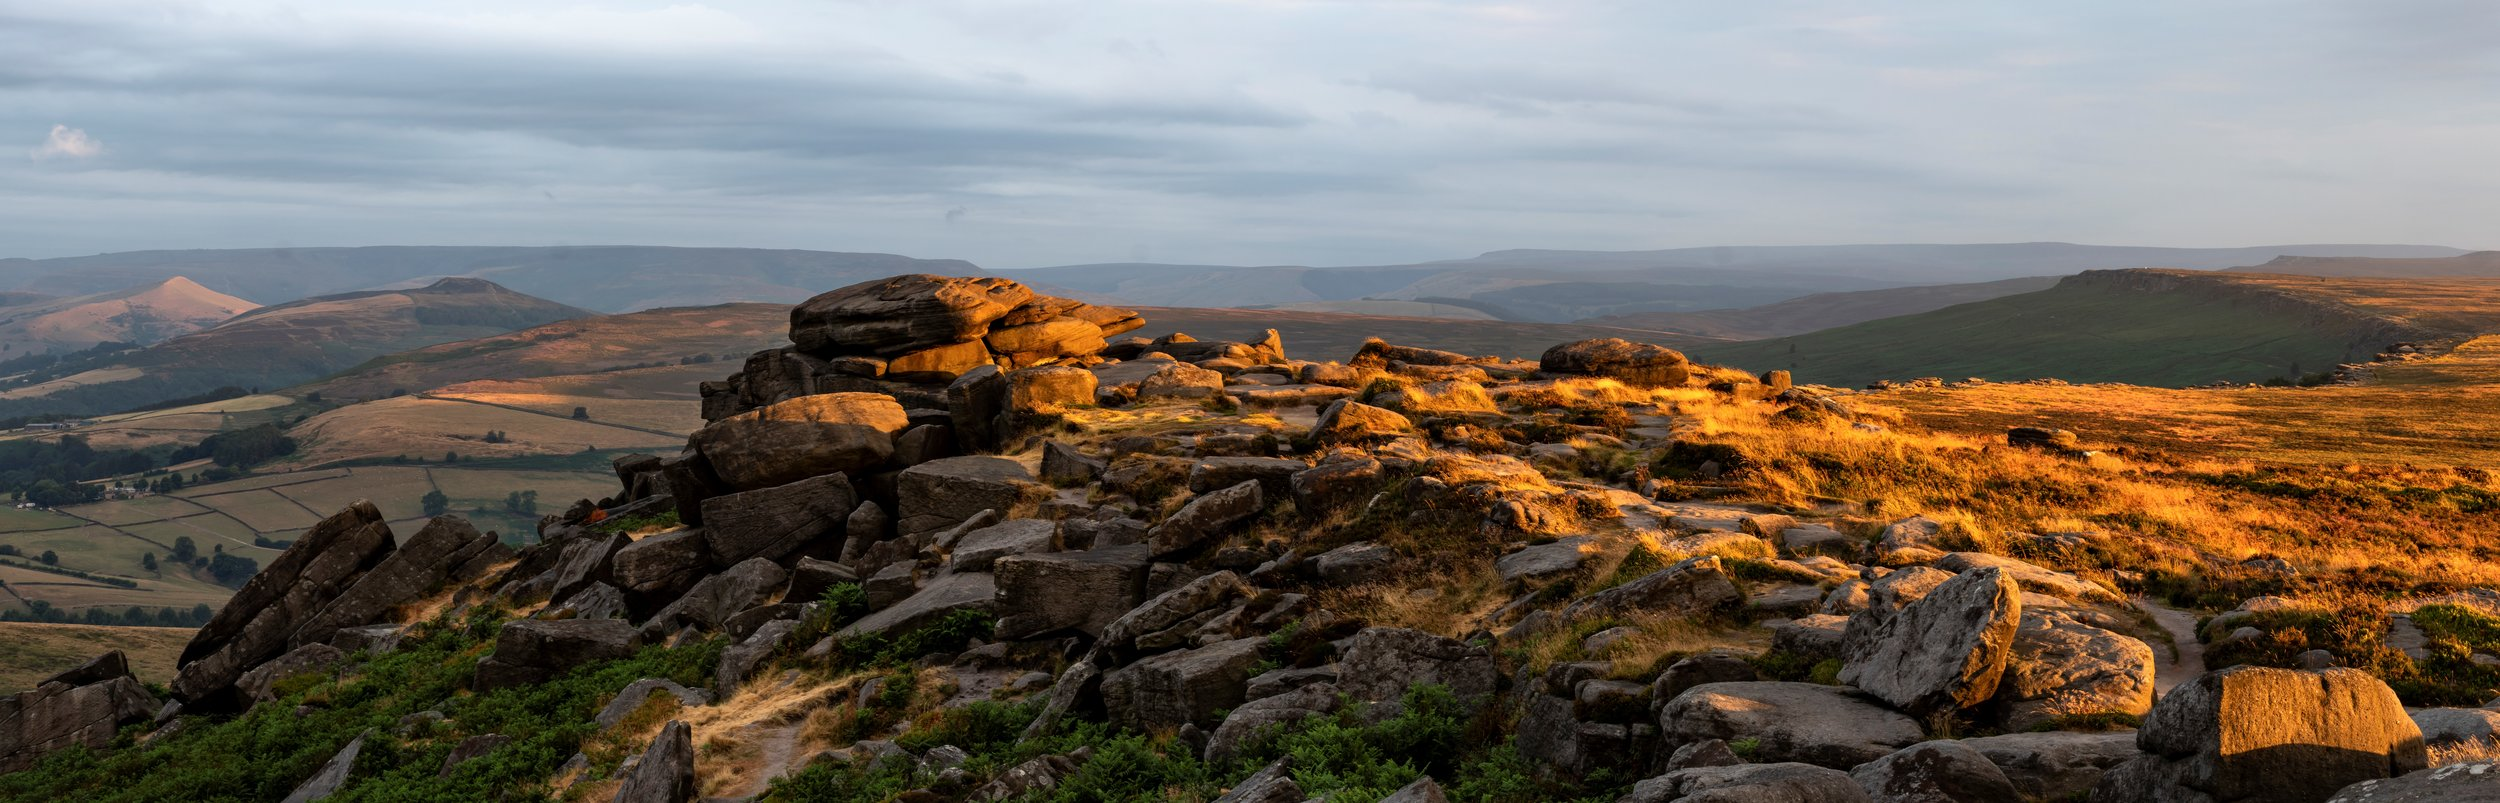 stanage cropped final  pano-3.jpg